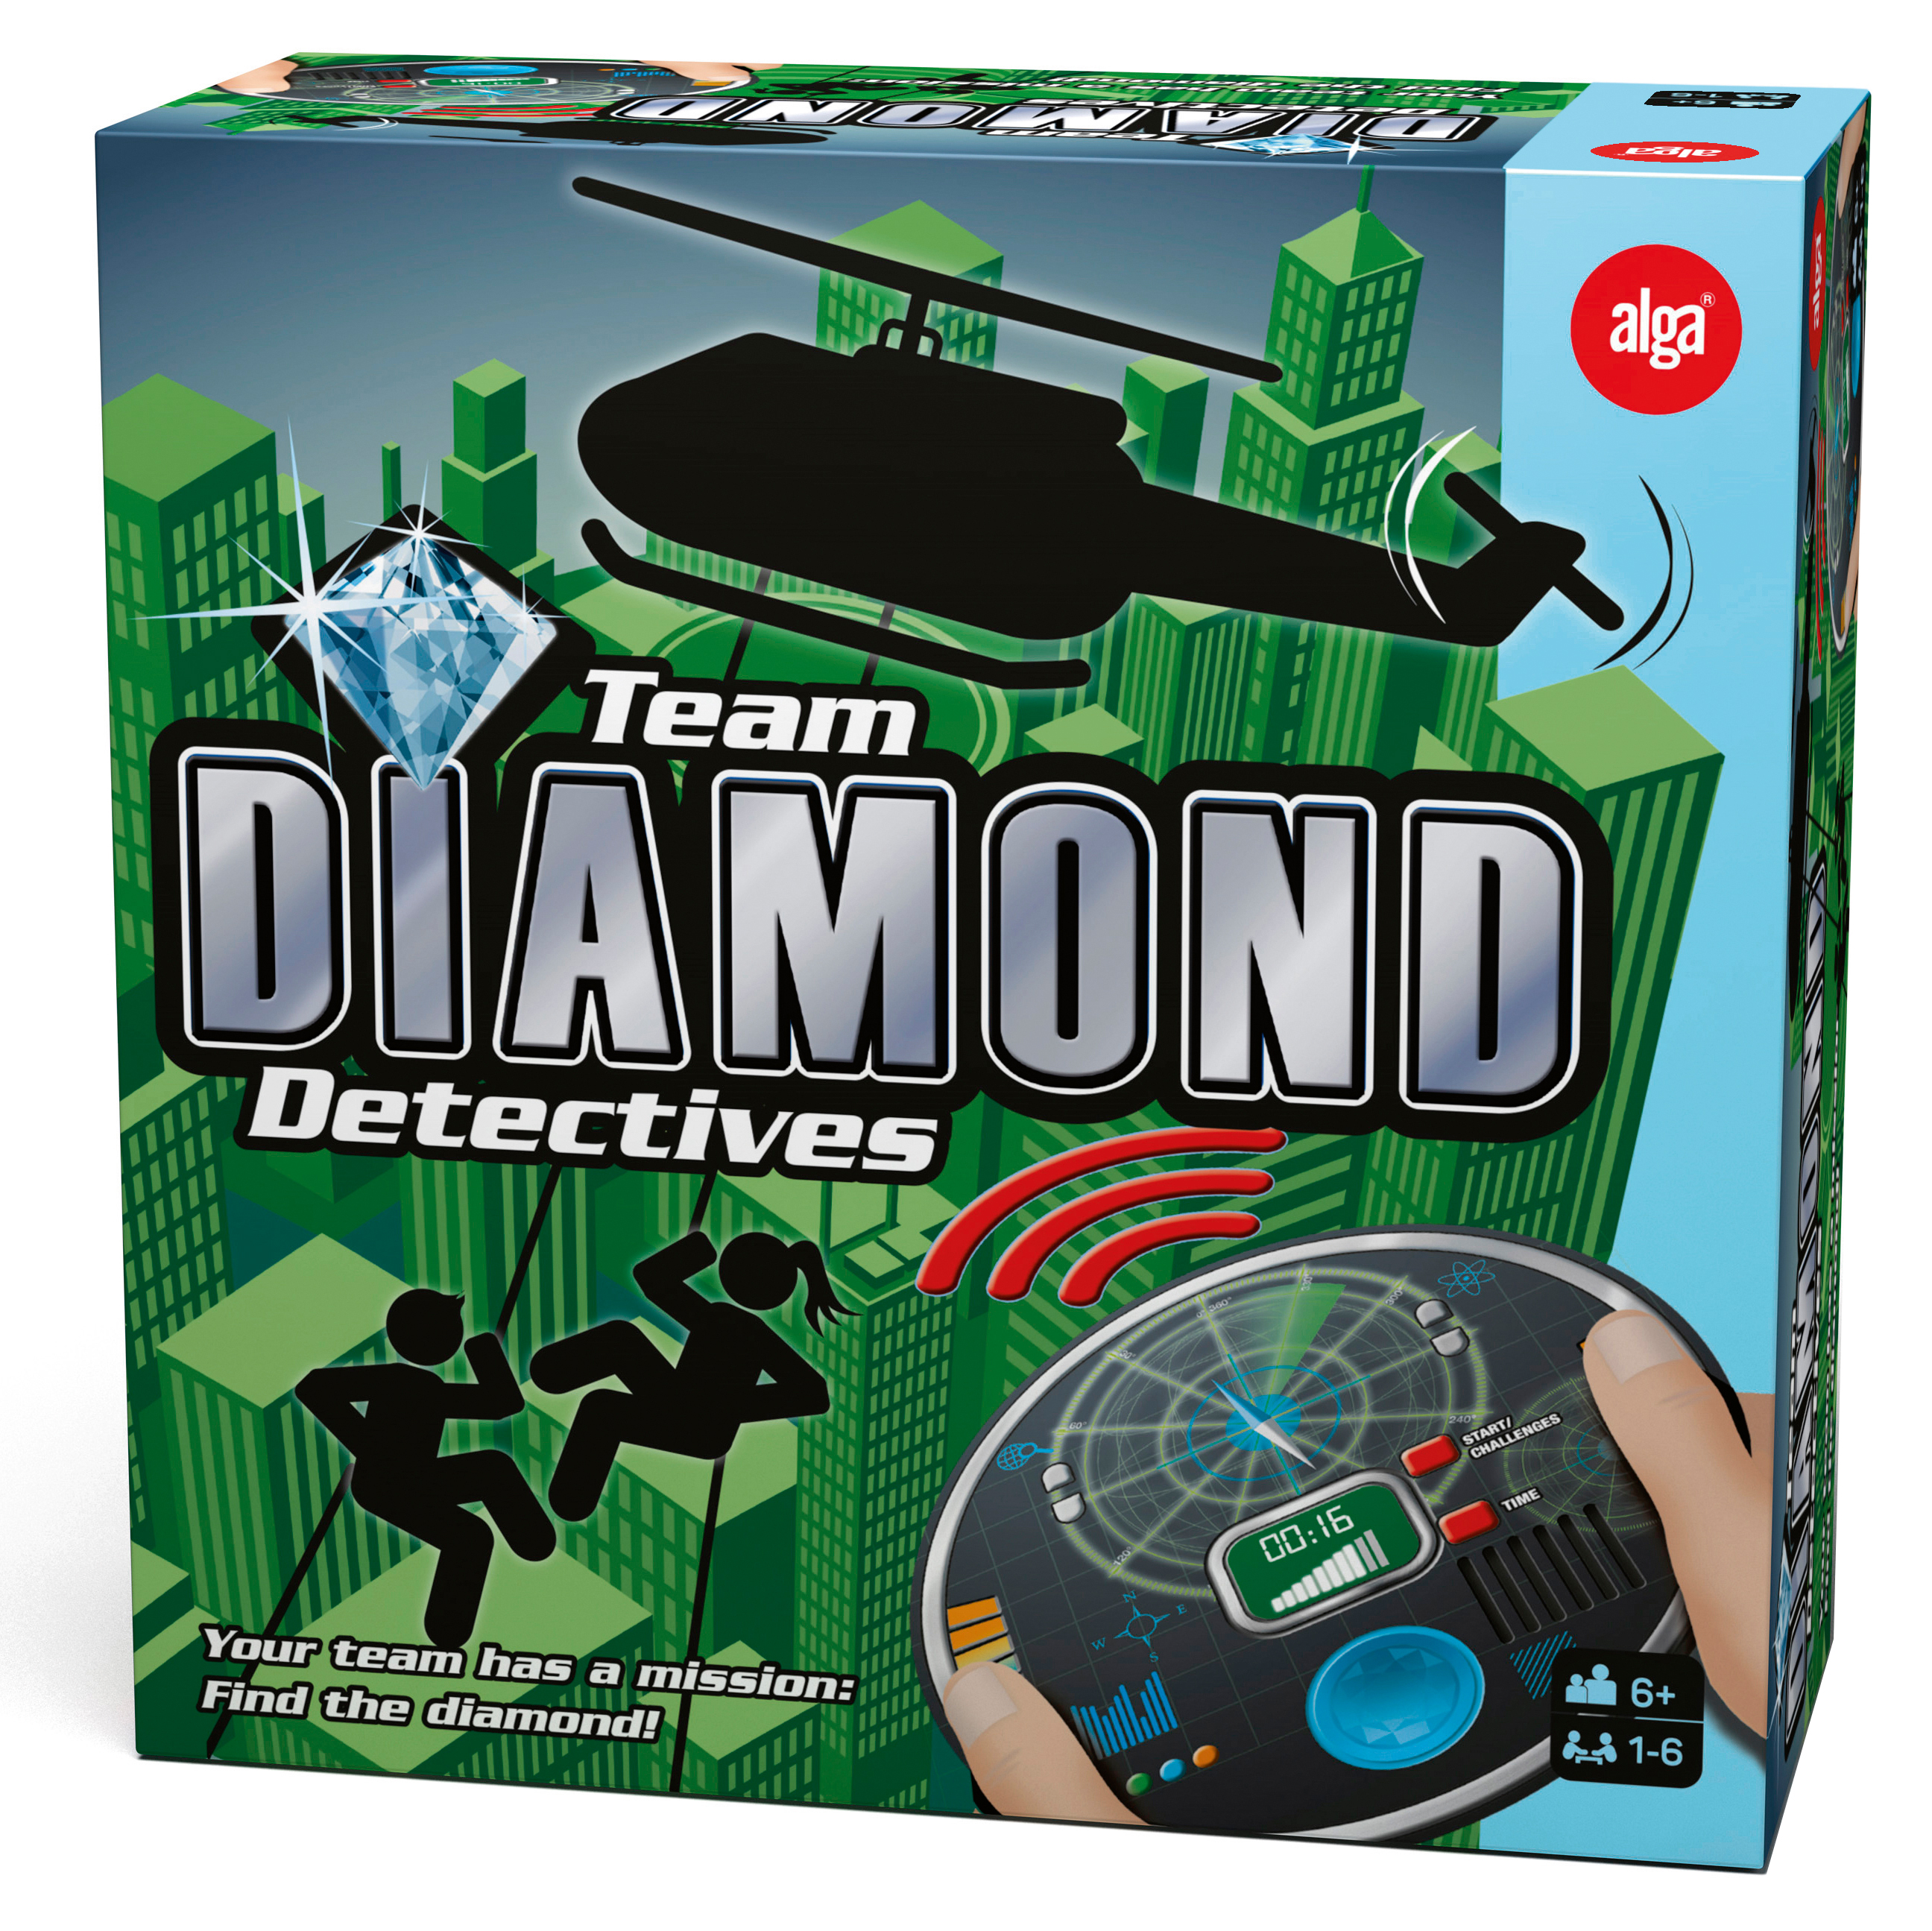 Team Diamond Detectives